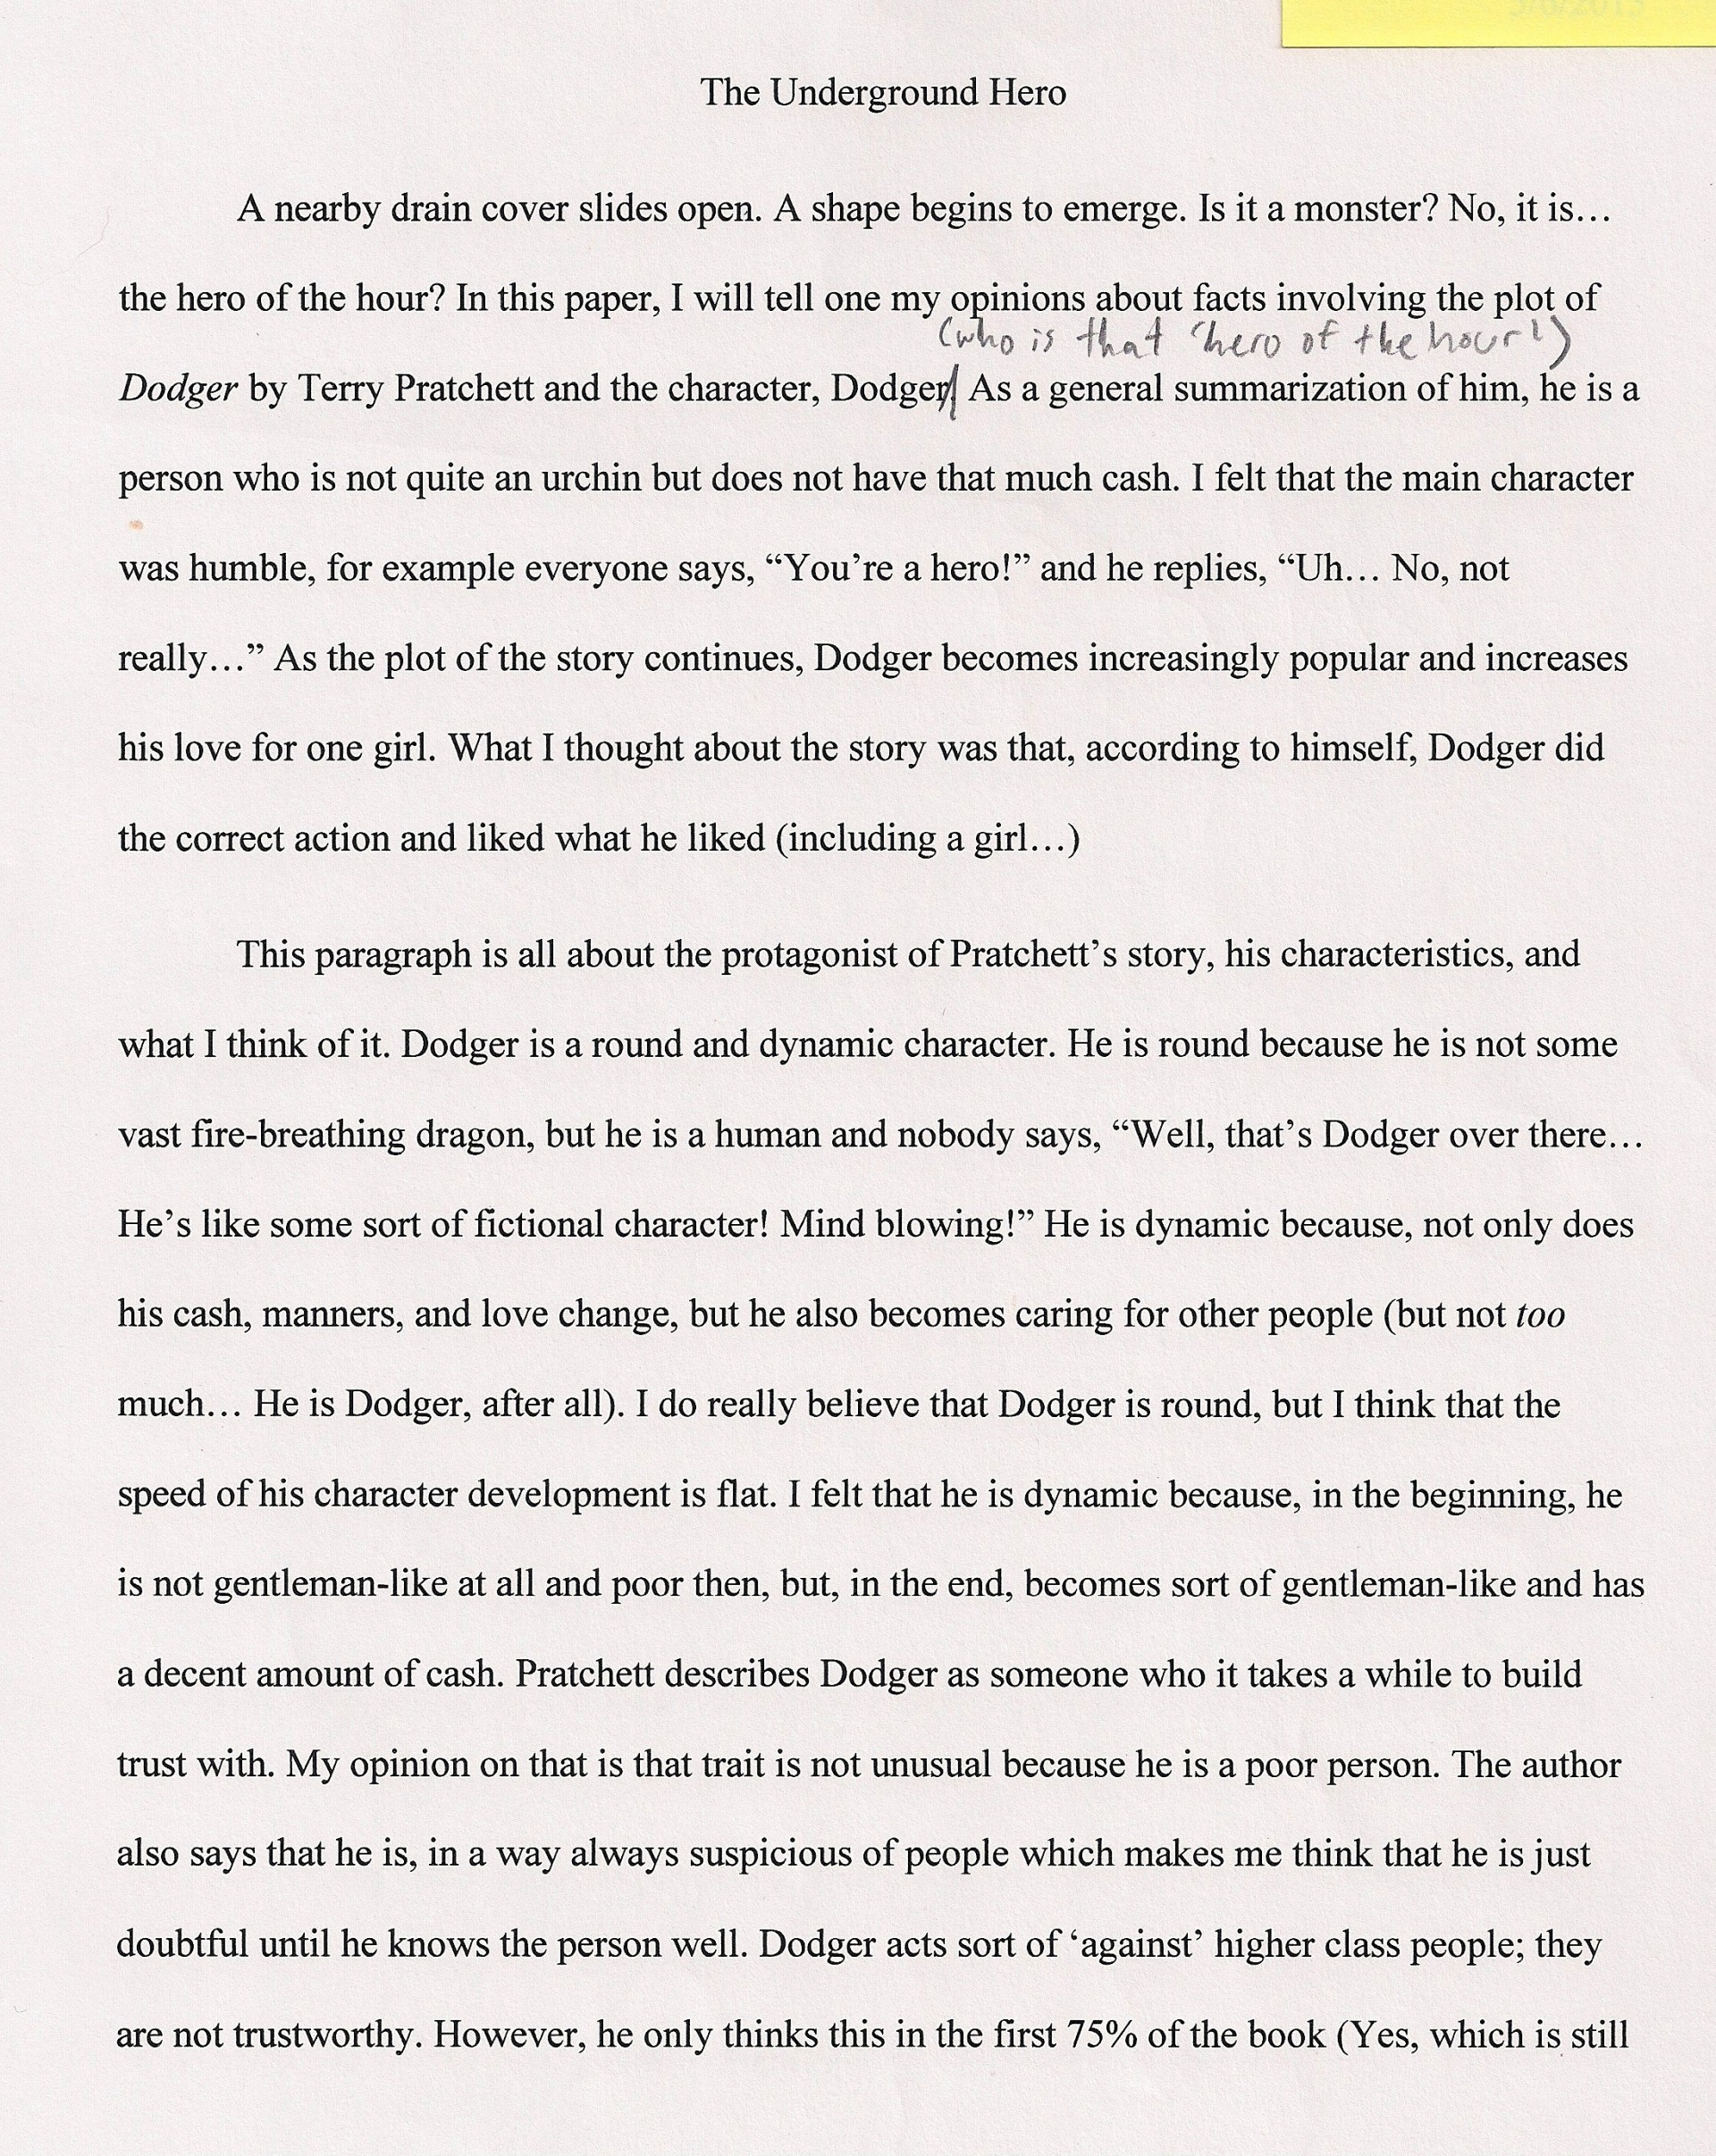 004 Essay Example An About My Hero The Underground Fascinating Heroine Teacher 500 Words A Narrative 1920